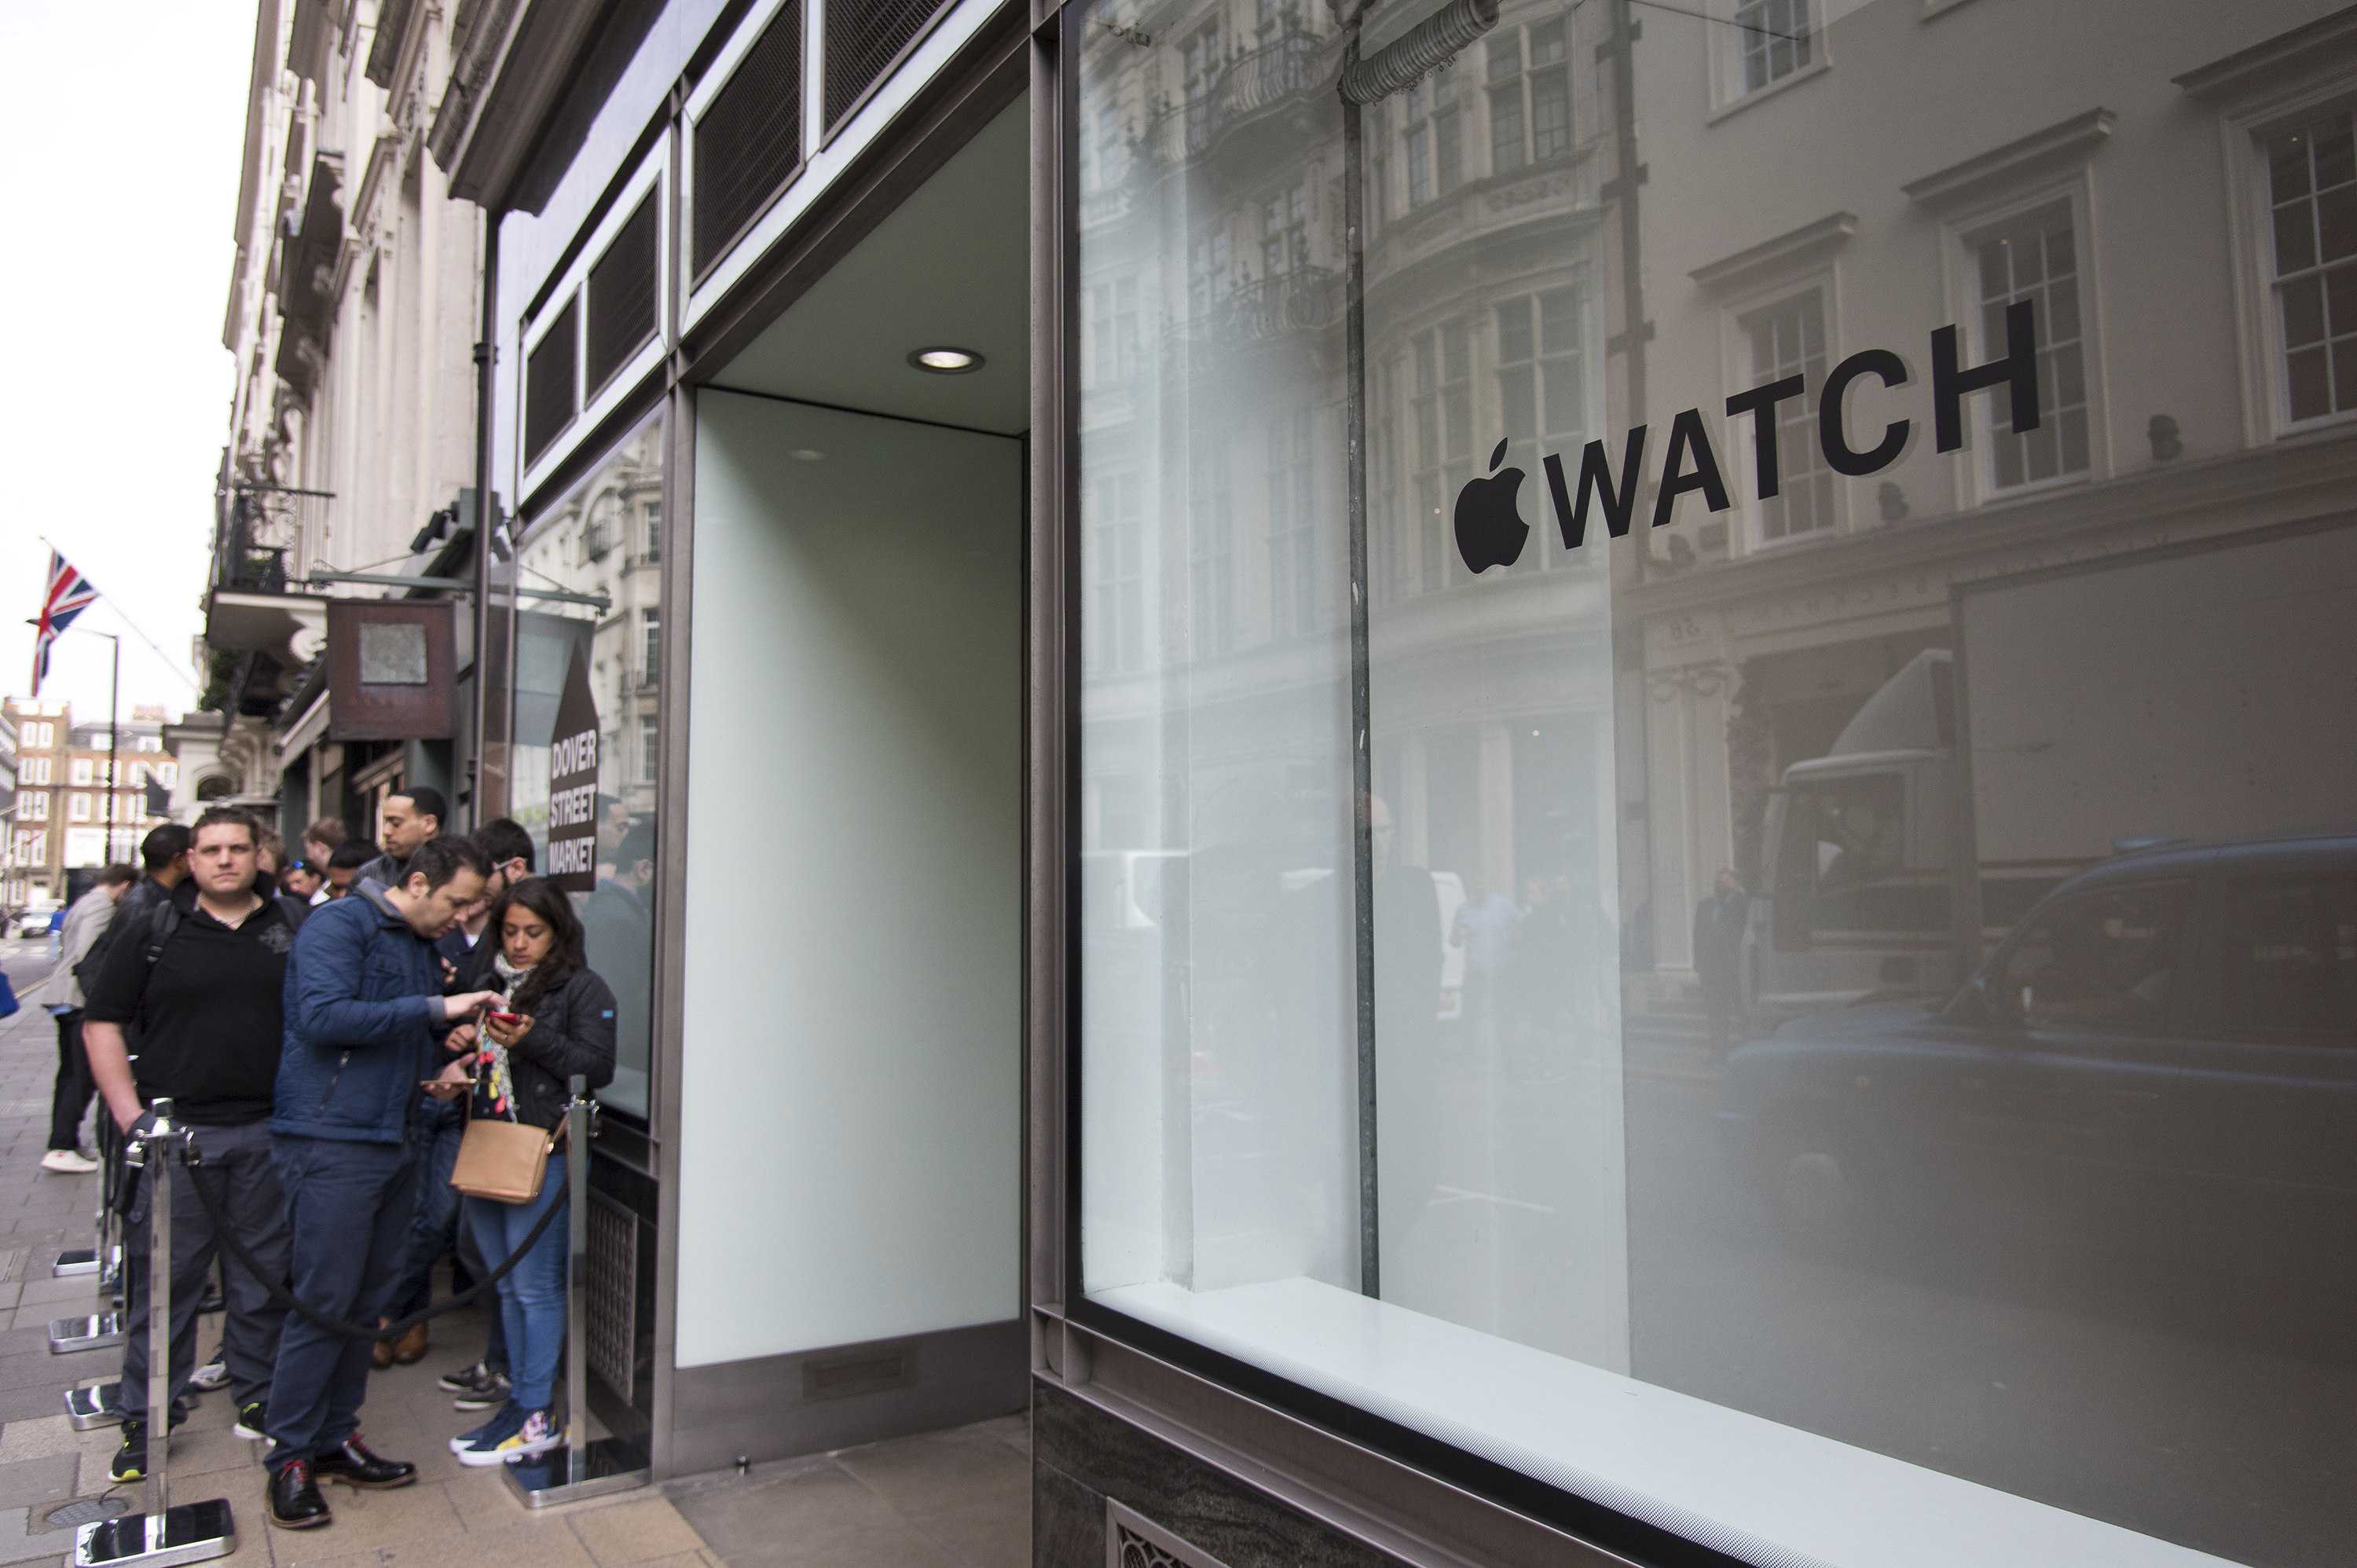 Line of customers waiting to purchase an Apple Watch outside Dover St. Market on April 24, 2015 in London City.